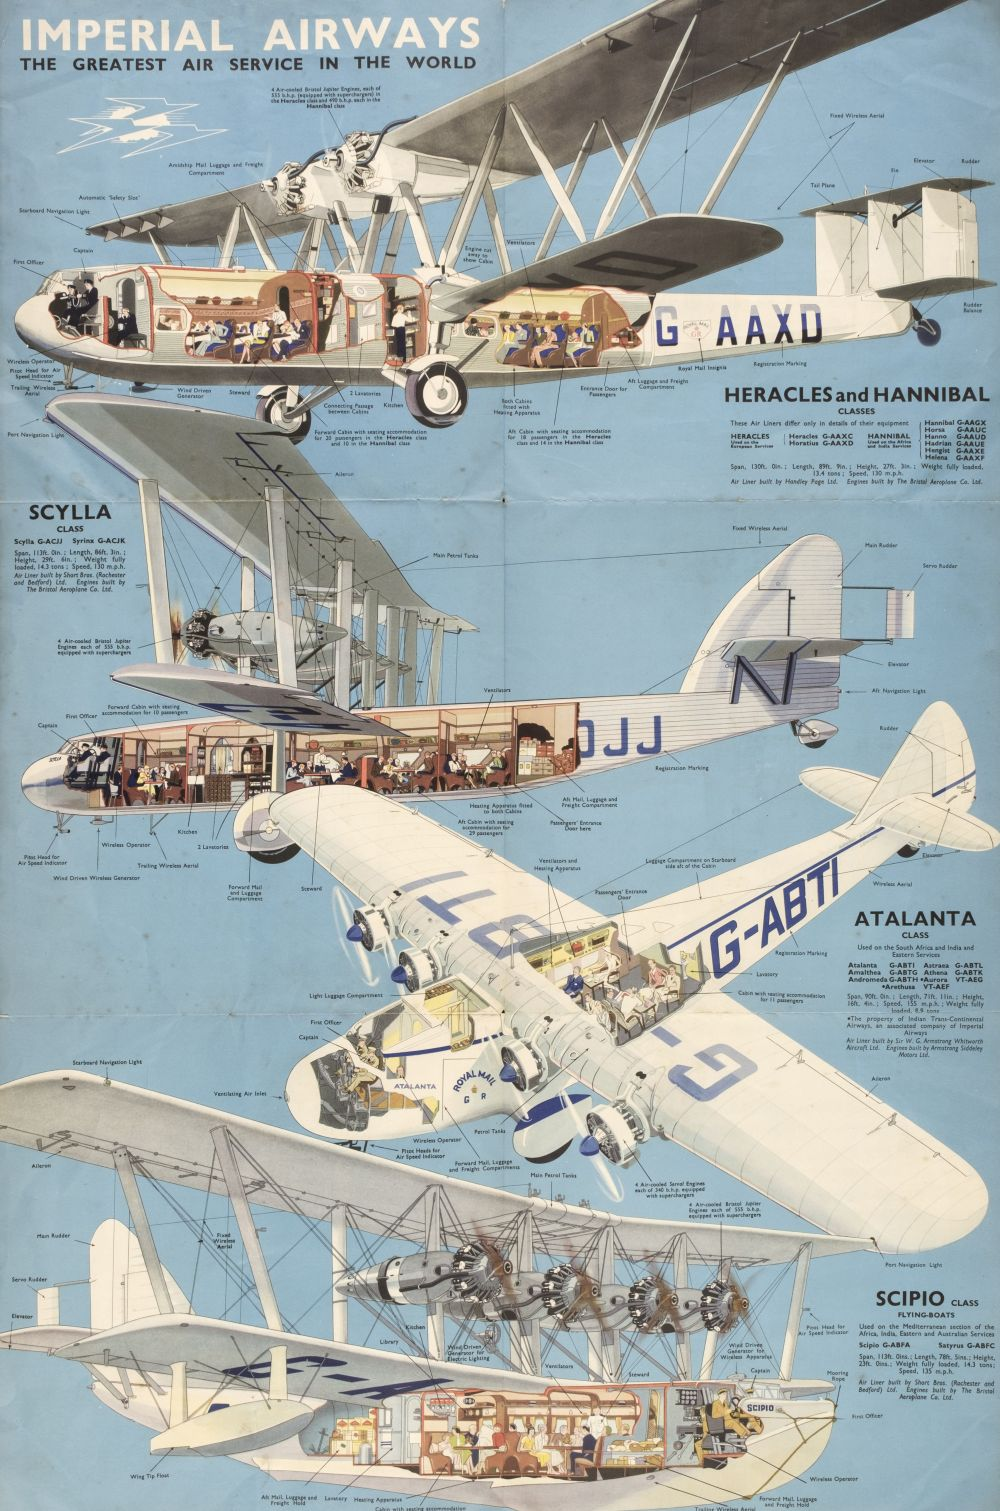 * Imperial Airways. The Greatest Air Service in the World